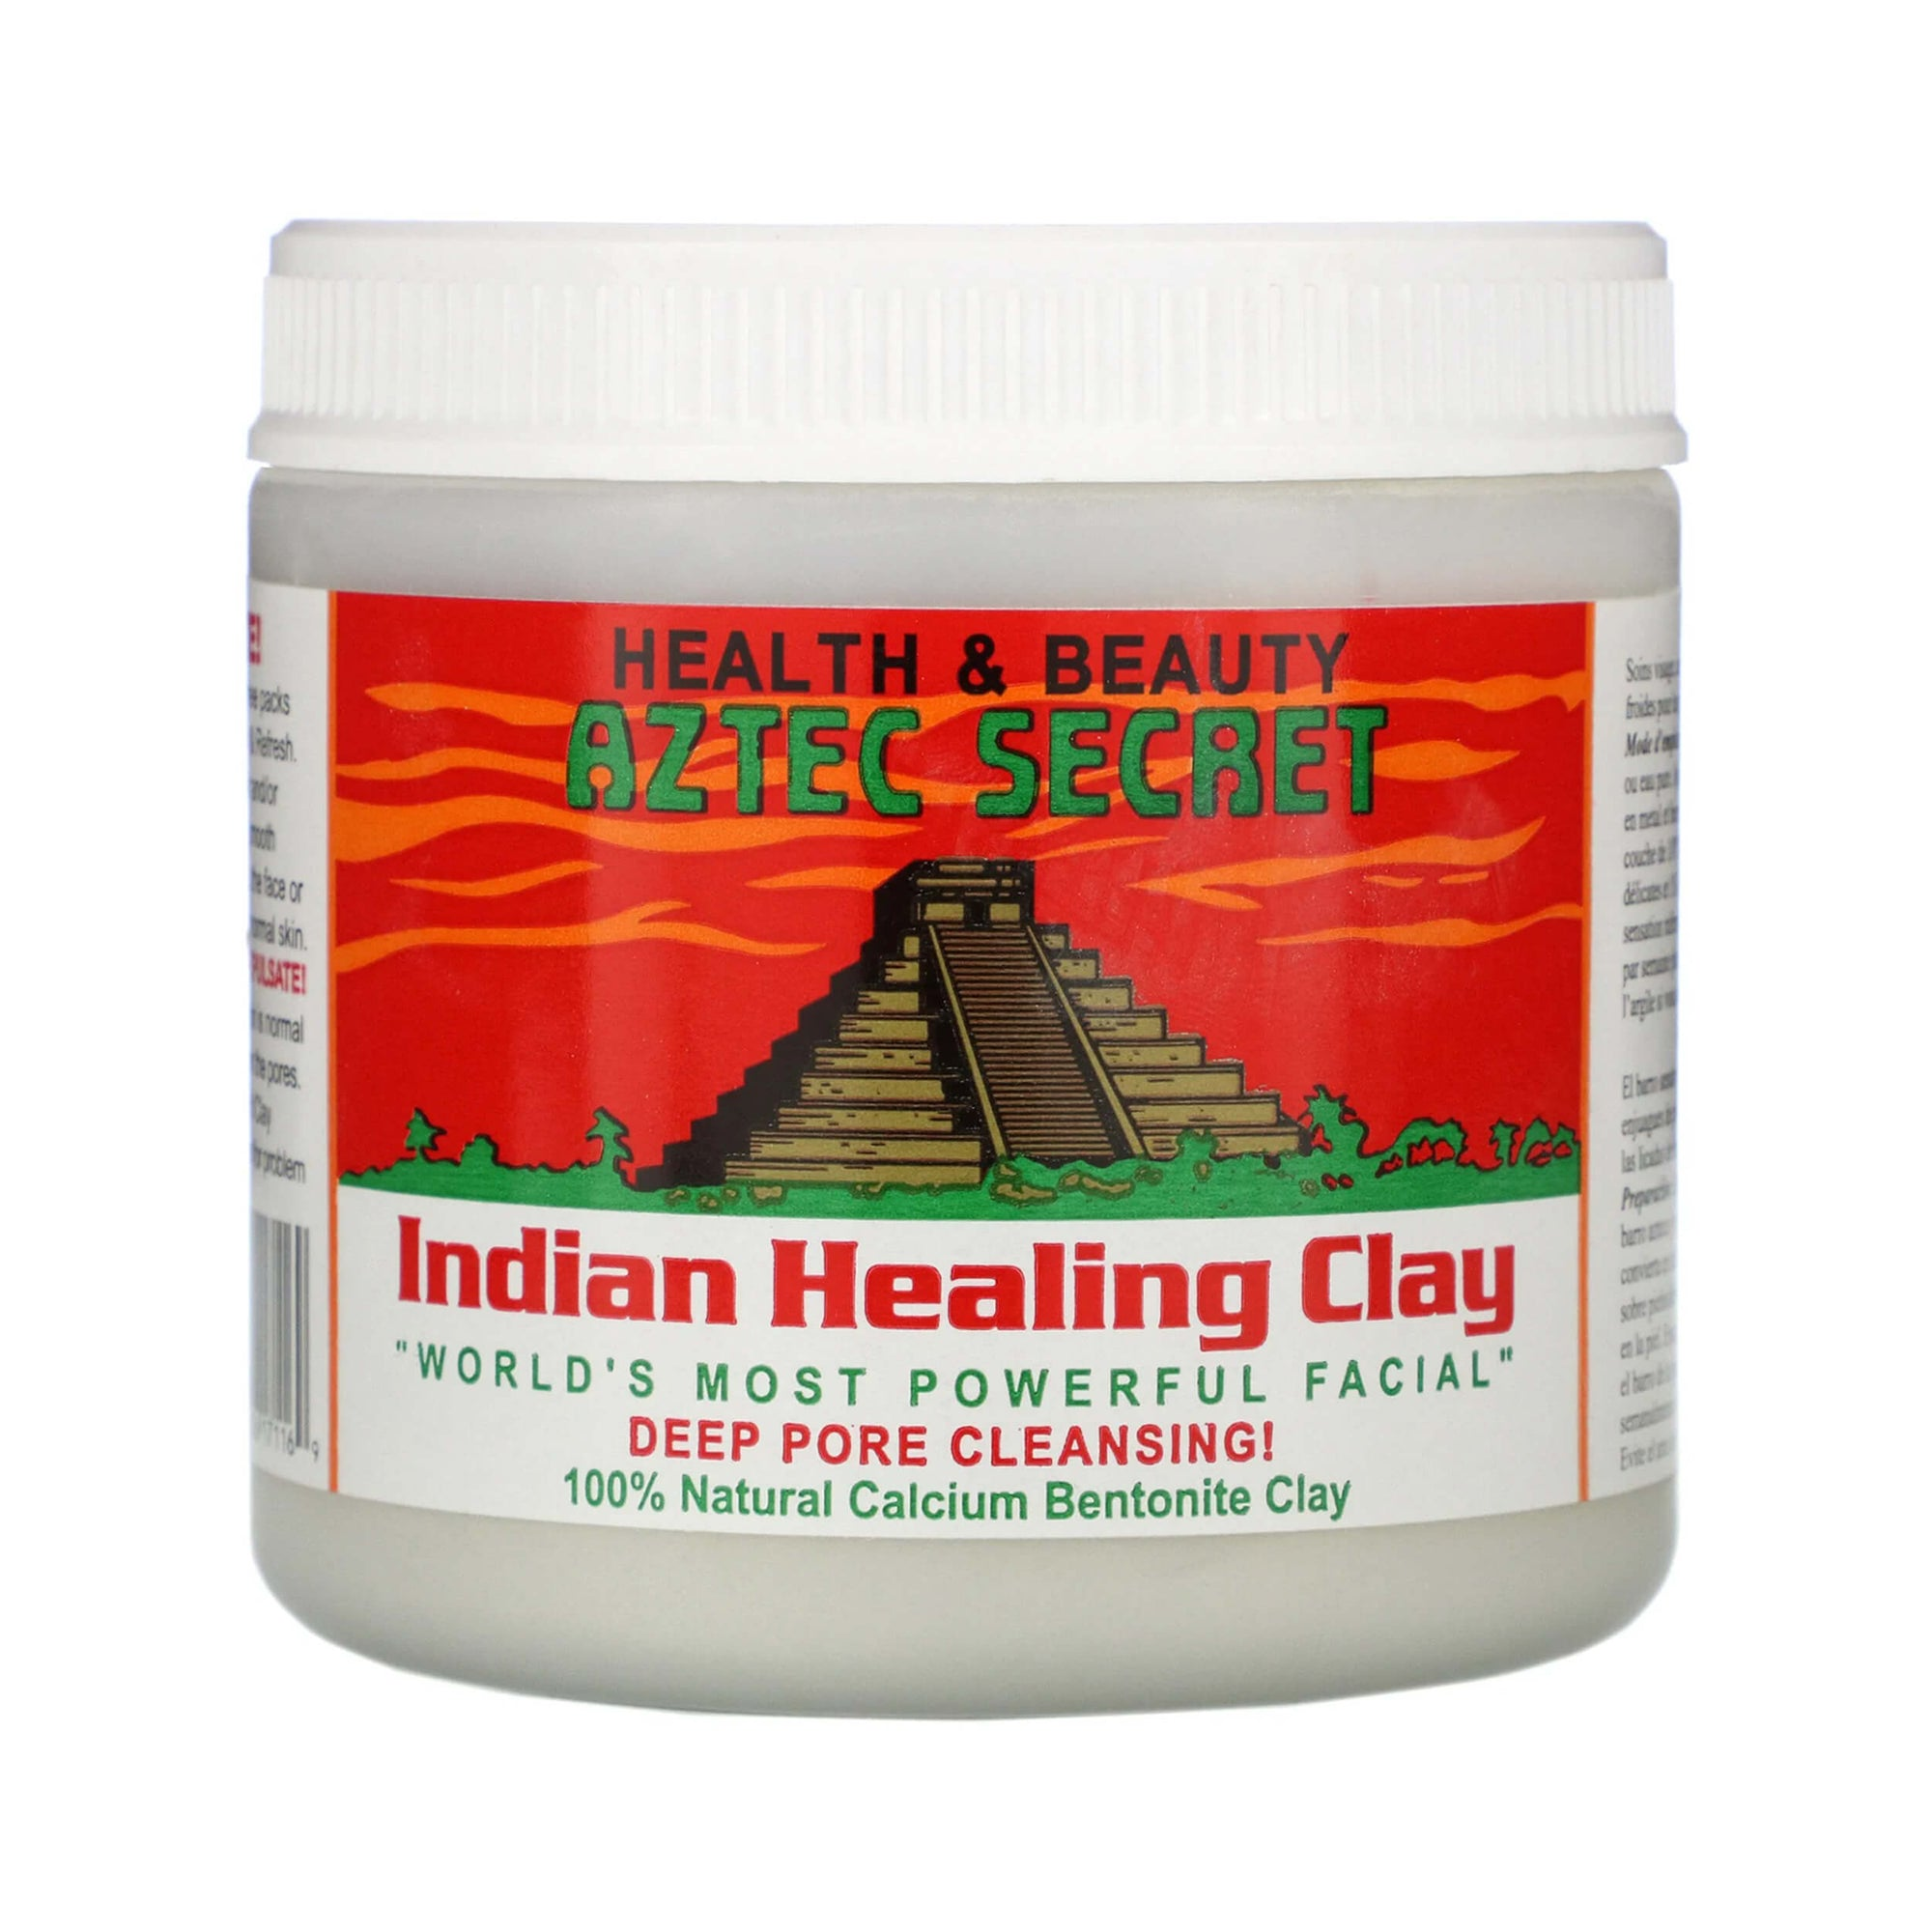 Aztec Secret Indian Healing Clay Deep Pore Cleansing 1 lb 454 g